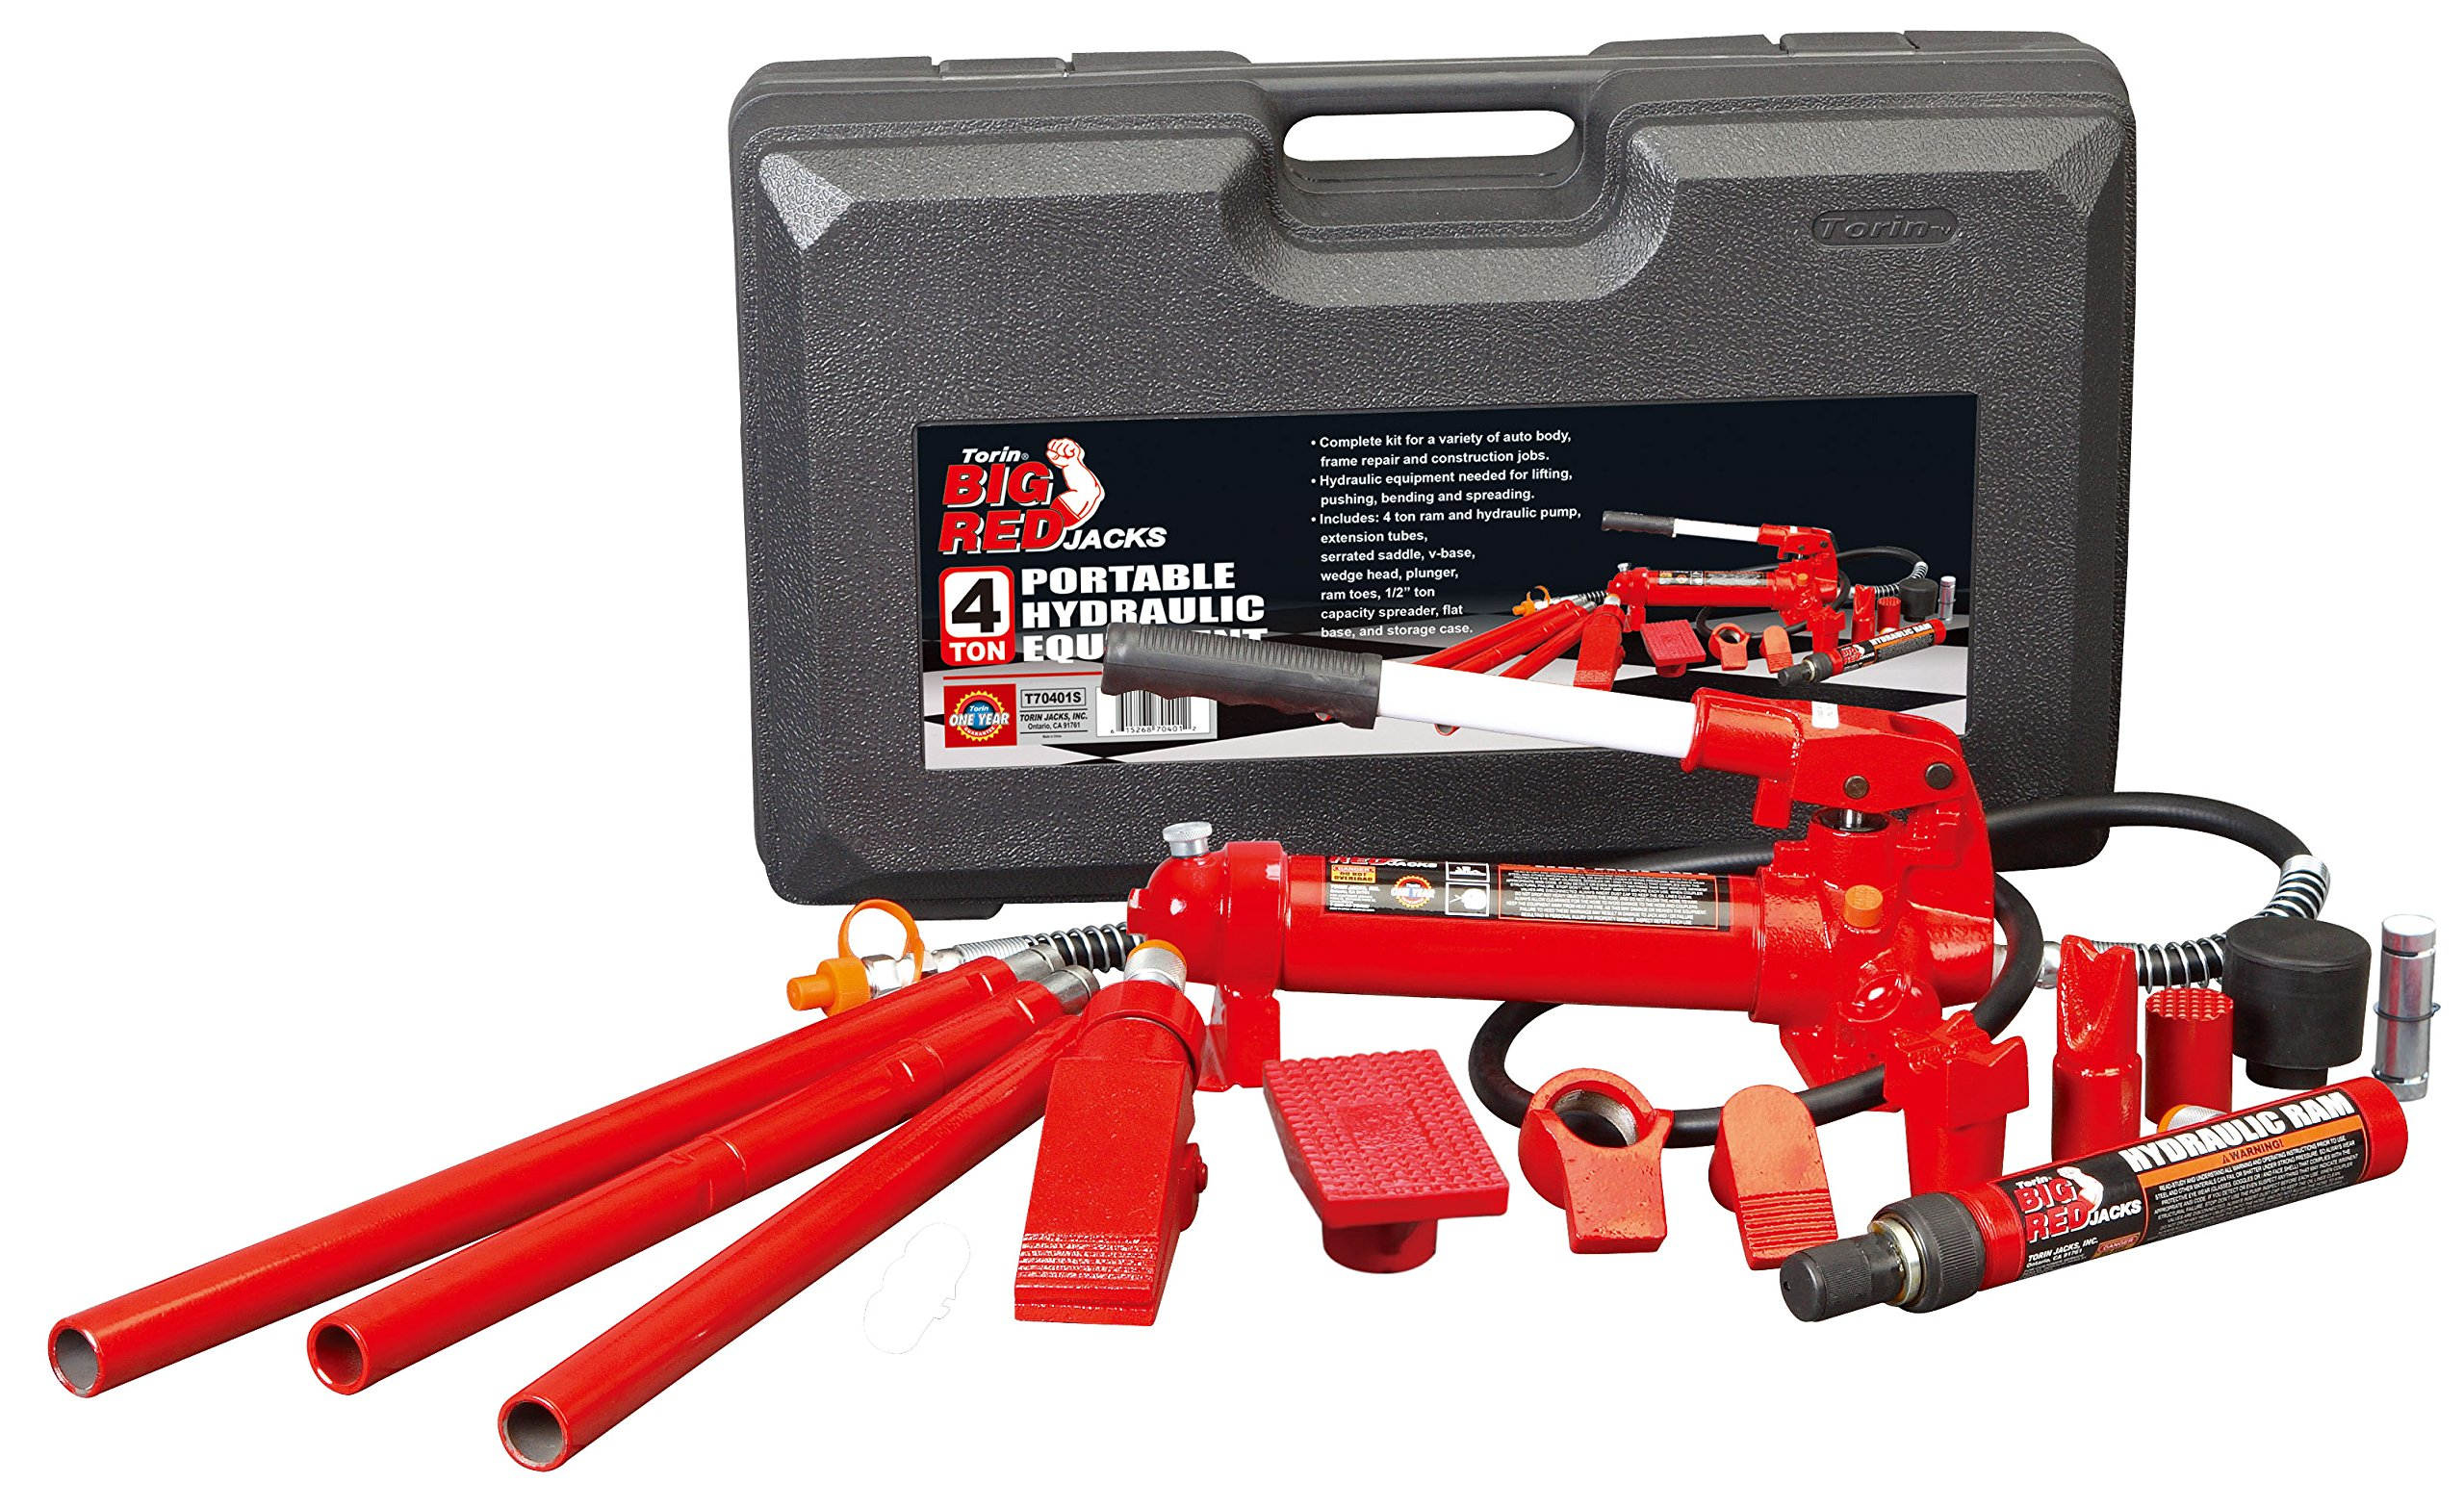 Torin Big Red Portable Hydraulic Ram: Auto Body Frame Repair Kit with Carrying Case, 4 Ton Capacity by Torin